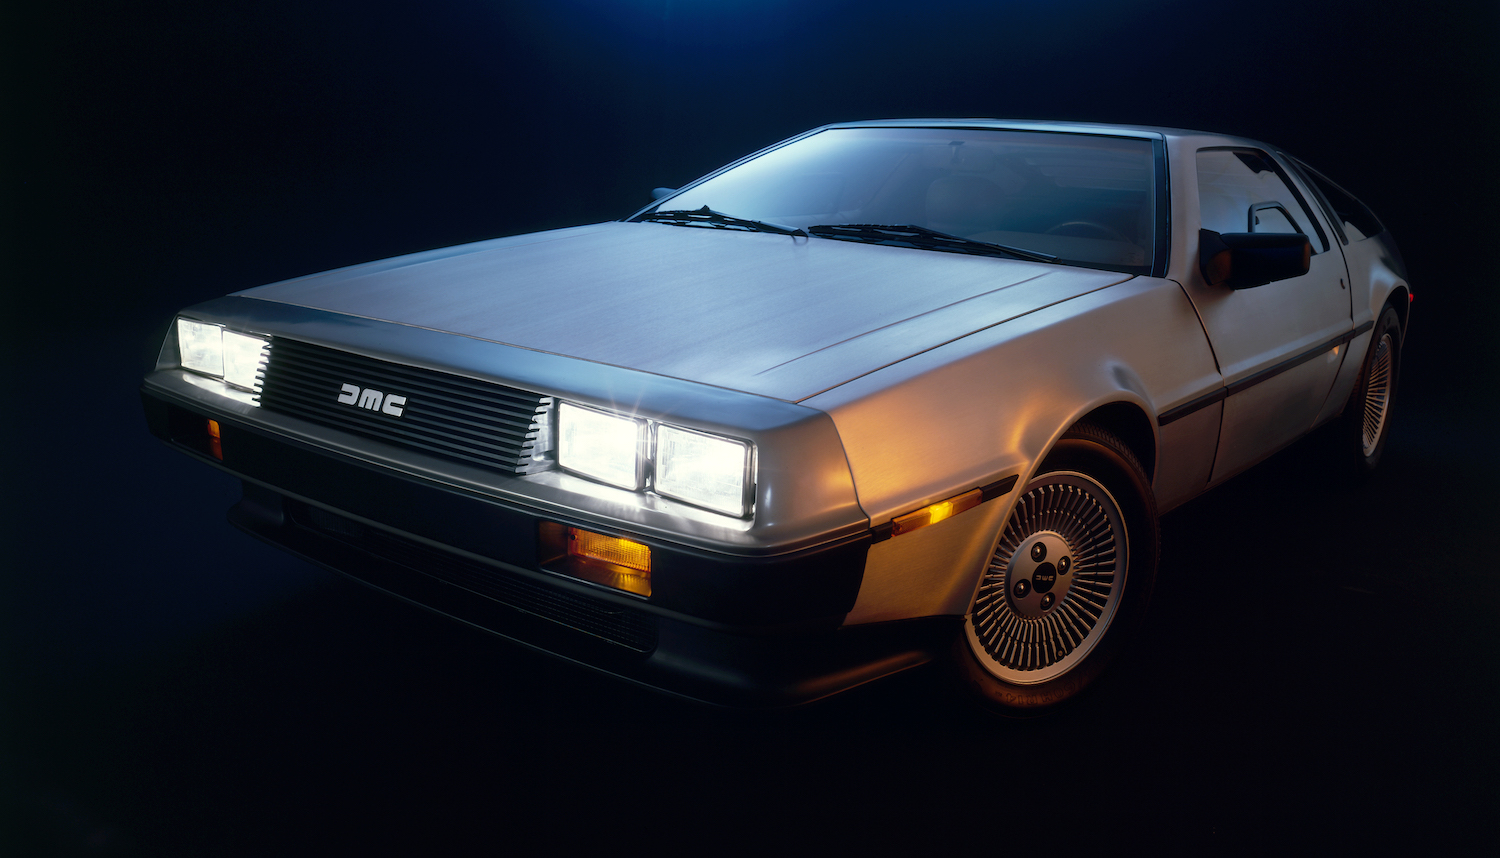 DeLorean DMC-12 Coming Back to the Future? - OnAllCylinders